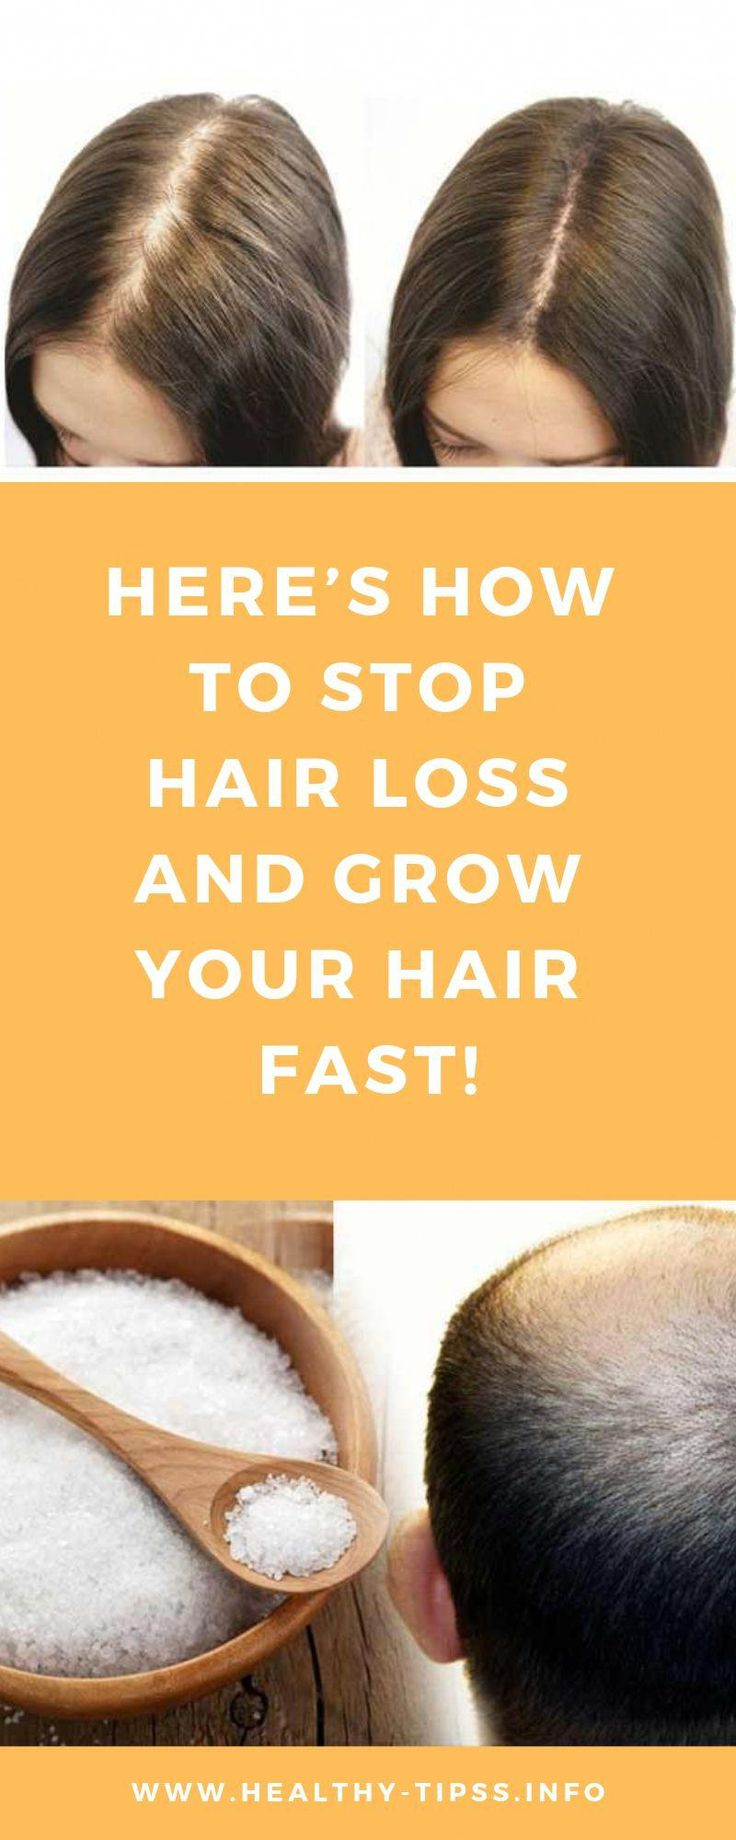 Hair loss is a normal process if it is in the normal range